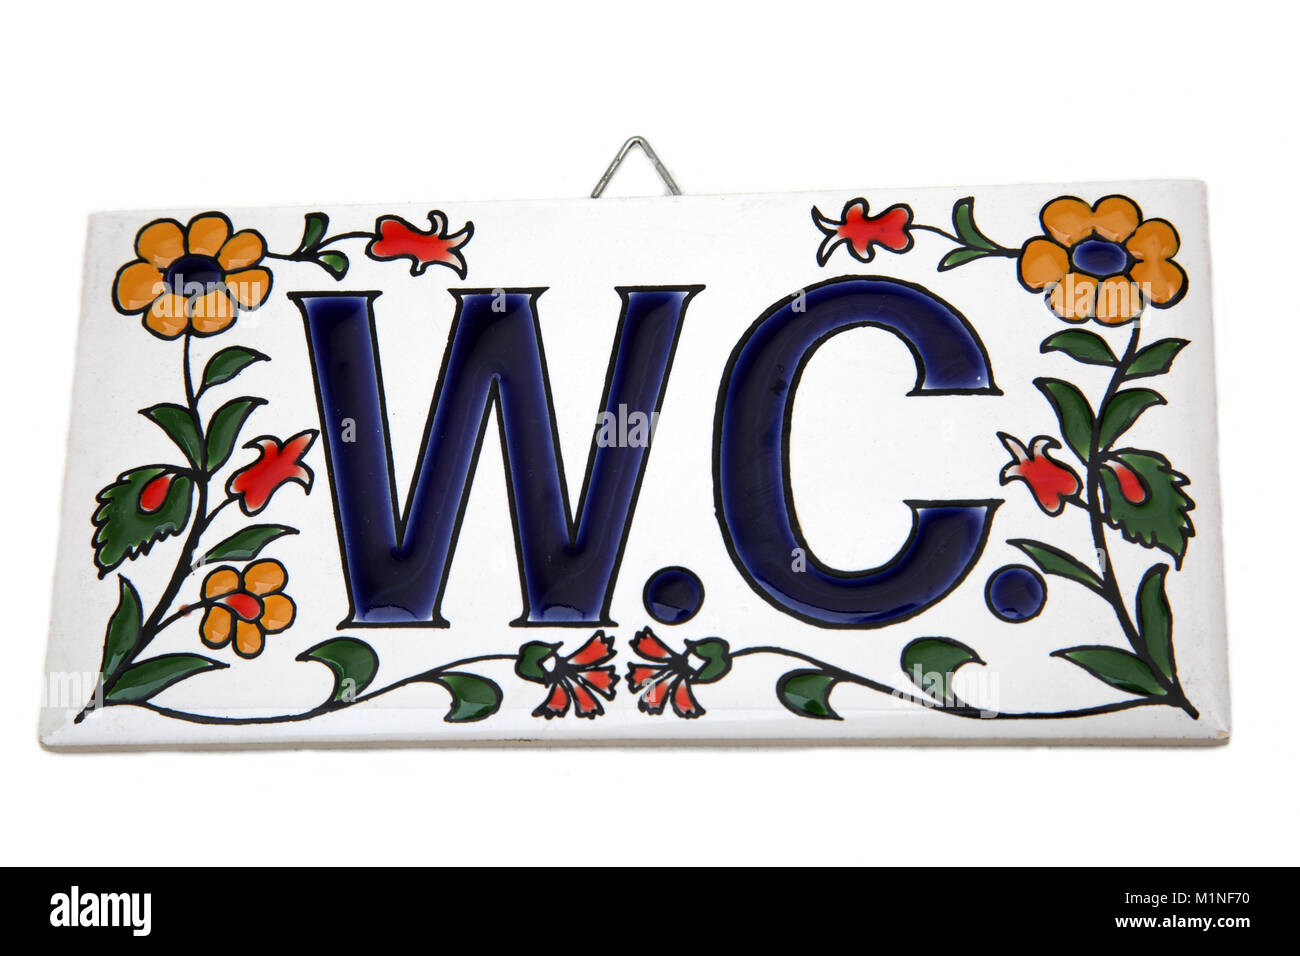 Floral Porcelain W.C (Water Closet) Plaque - Stock Image